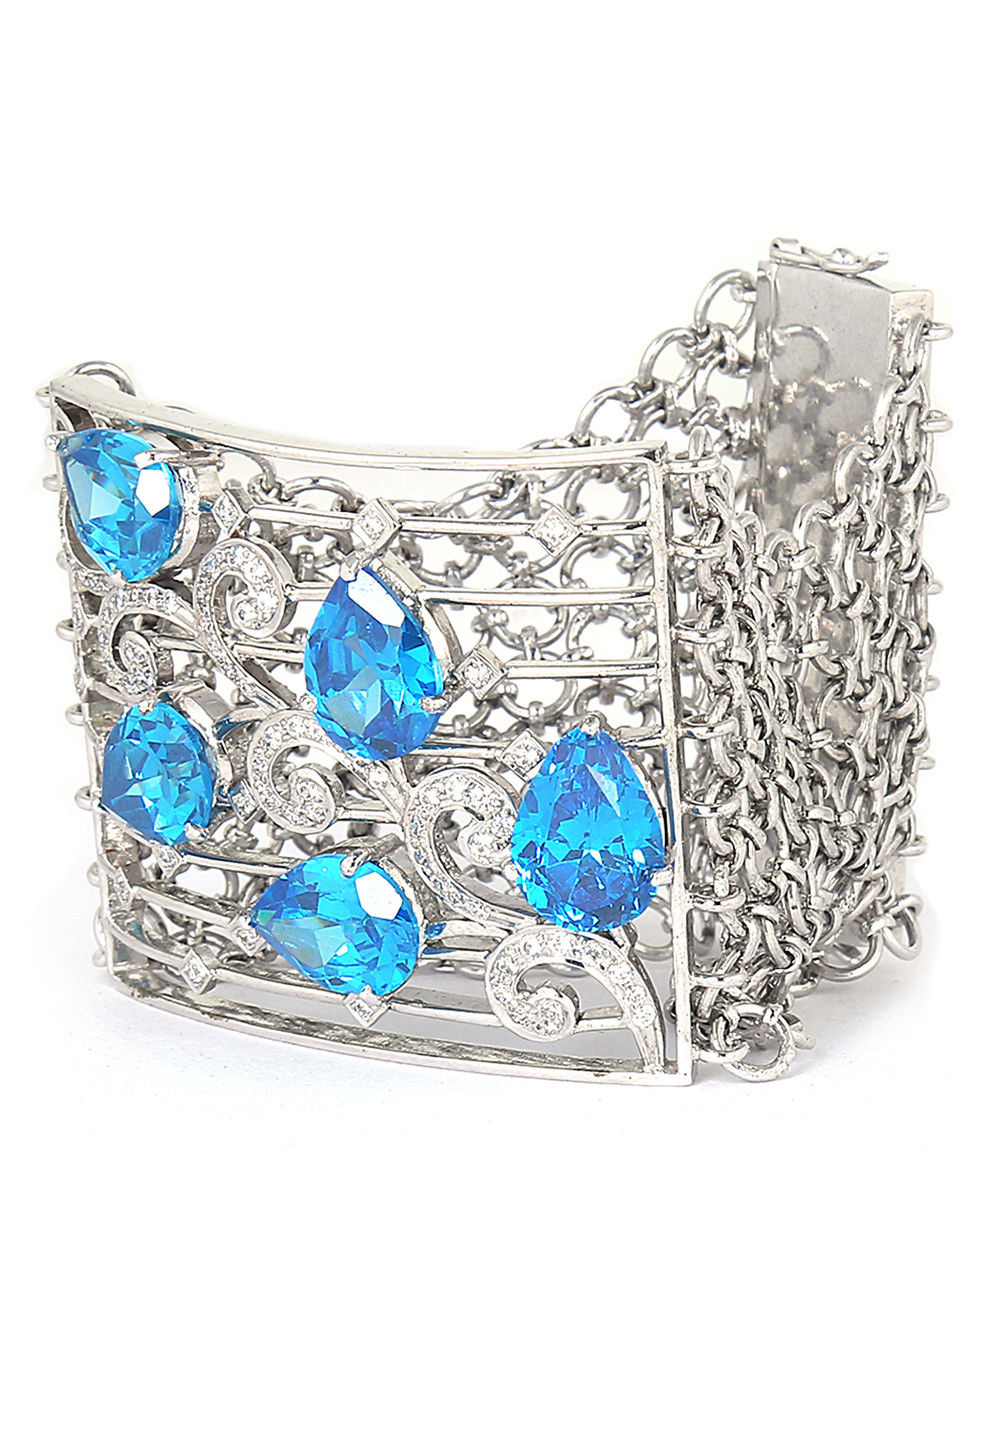 American Diamond Studded Bracelets in White and Blue